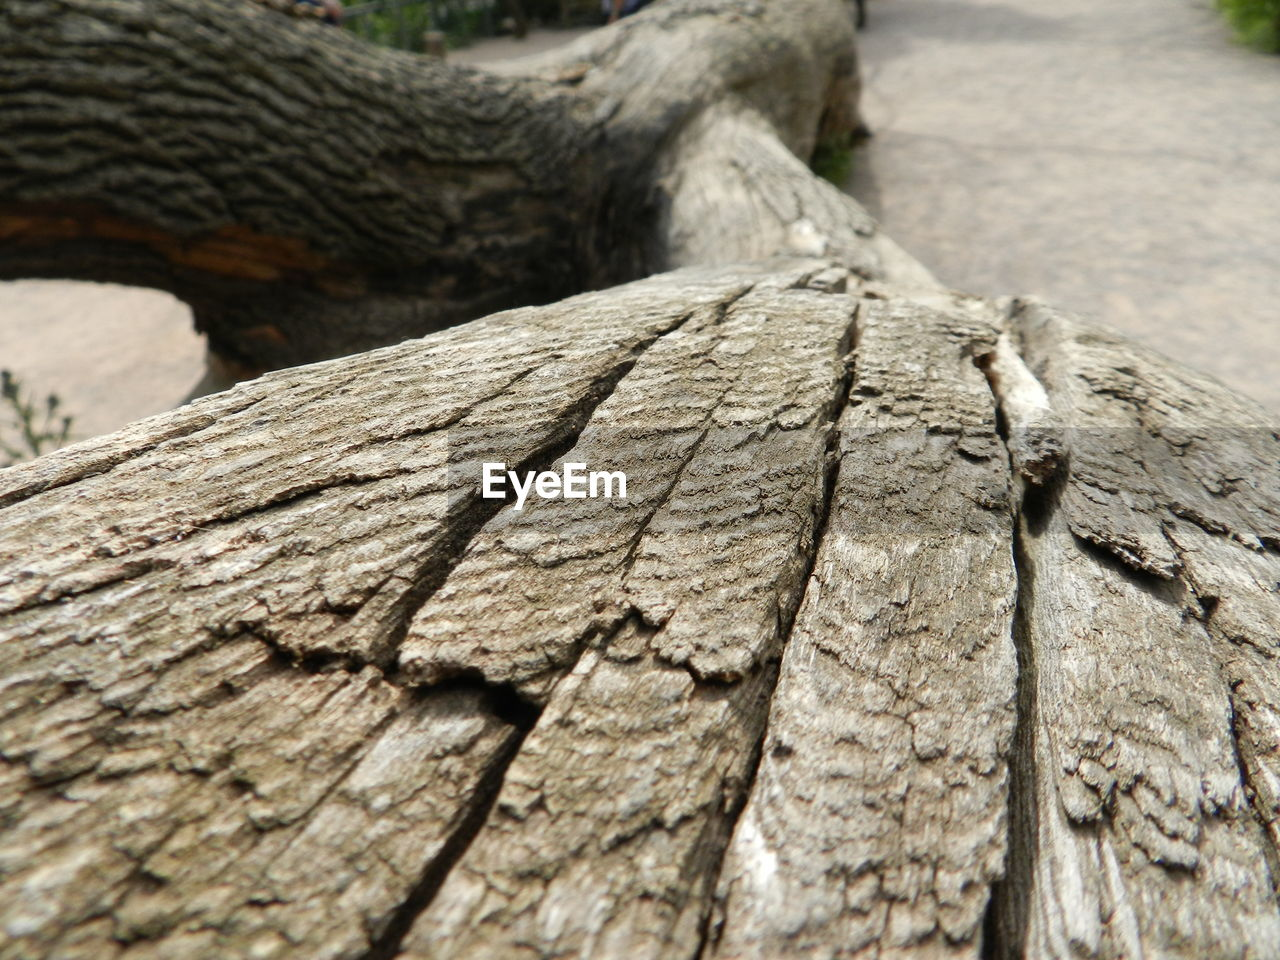 wood - material, textured, tree trunk, day, log, rough, cracked, one animal, no people, outdoors, tree, close-up, nature, animal themes